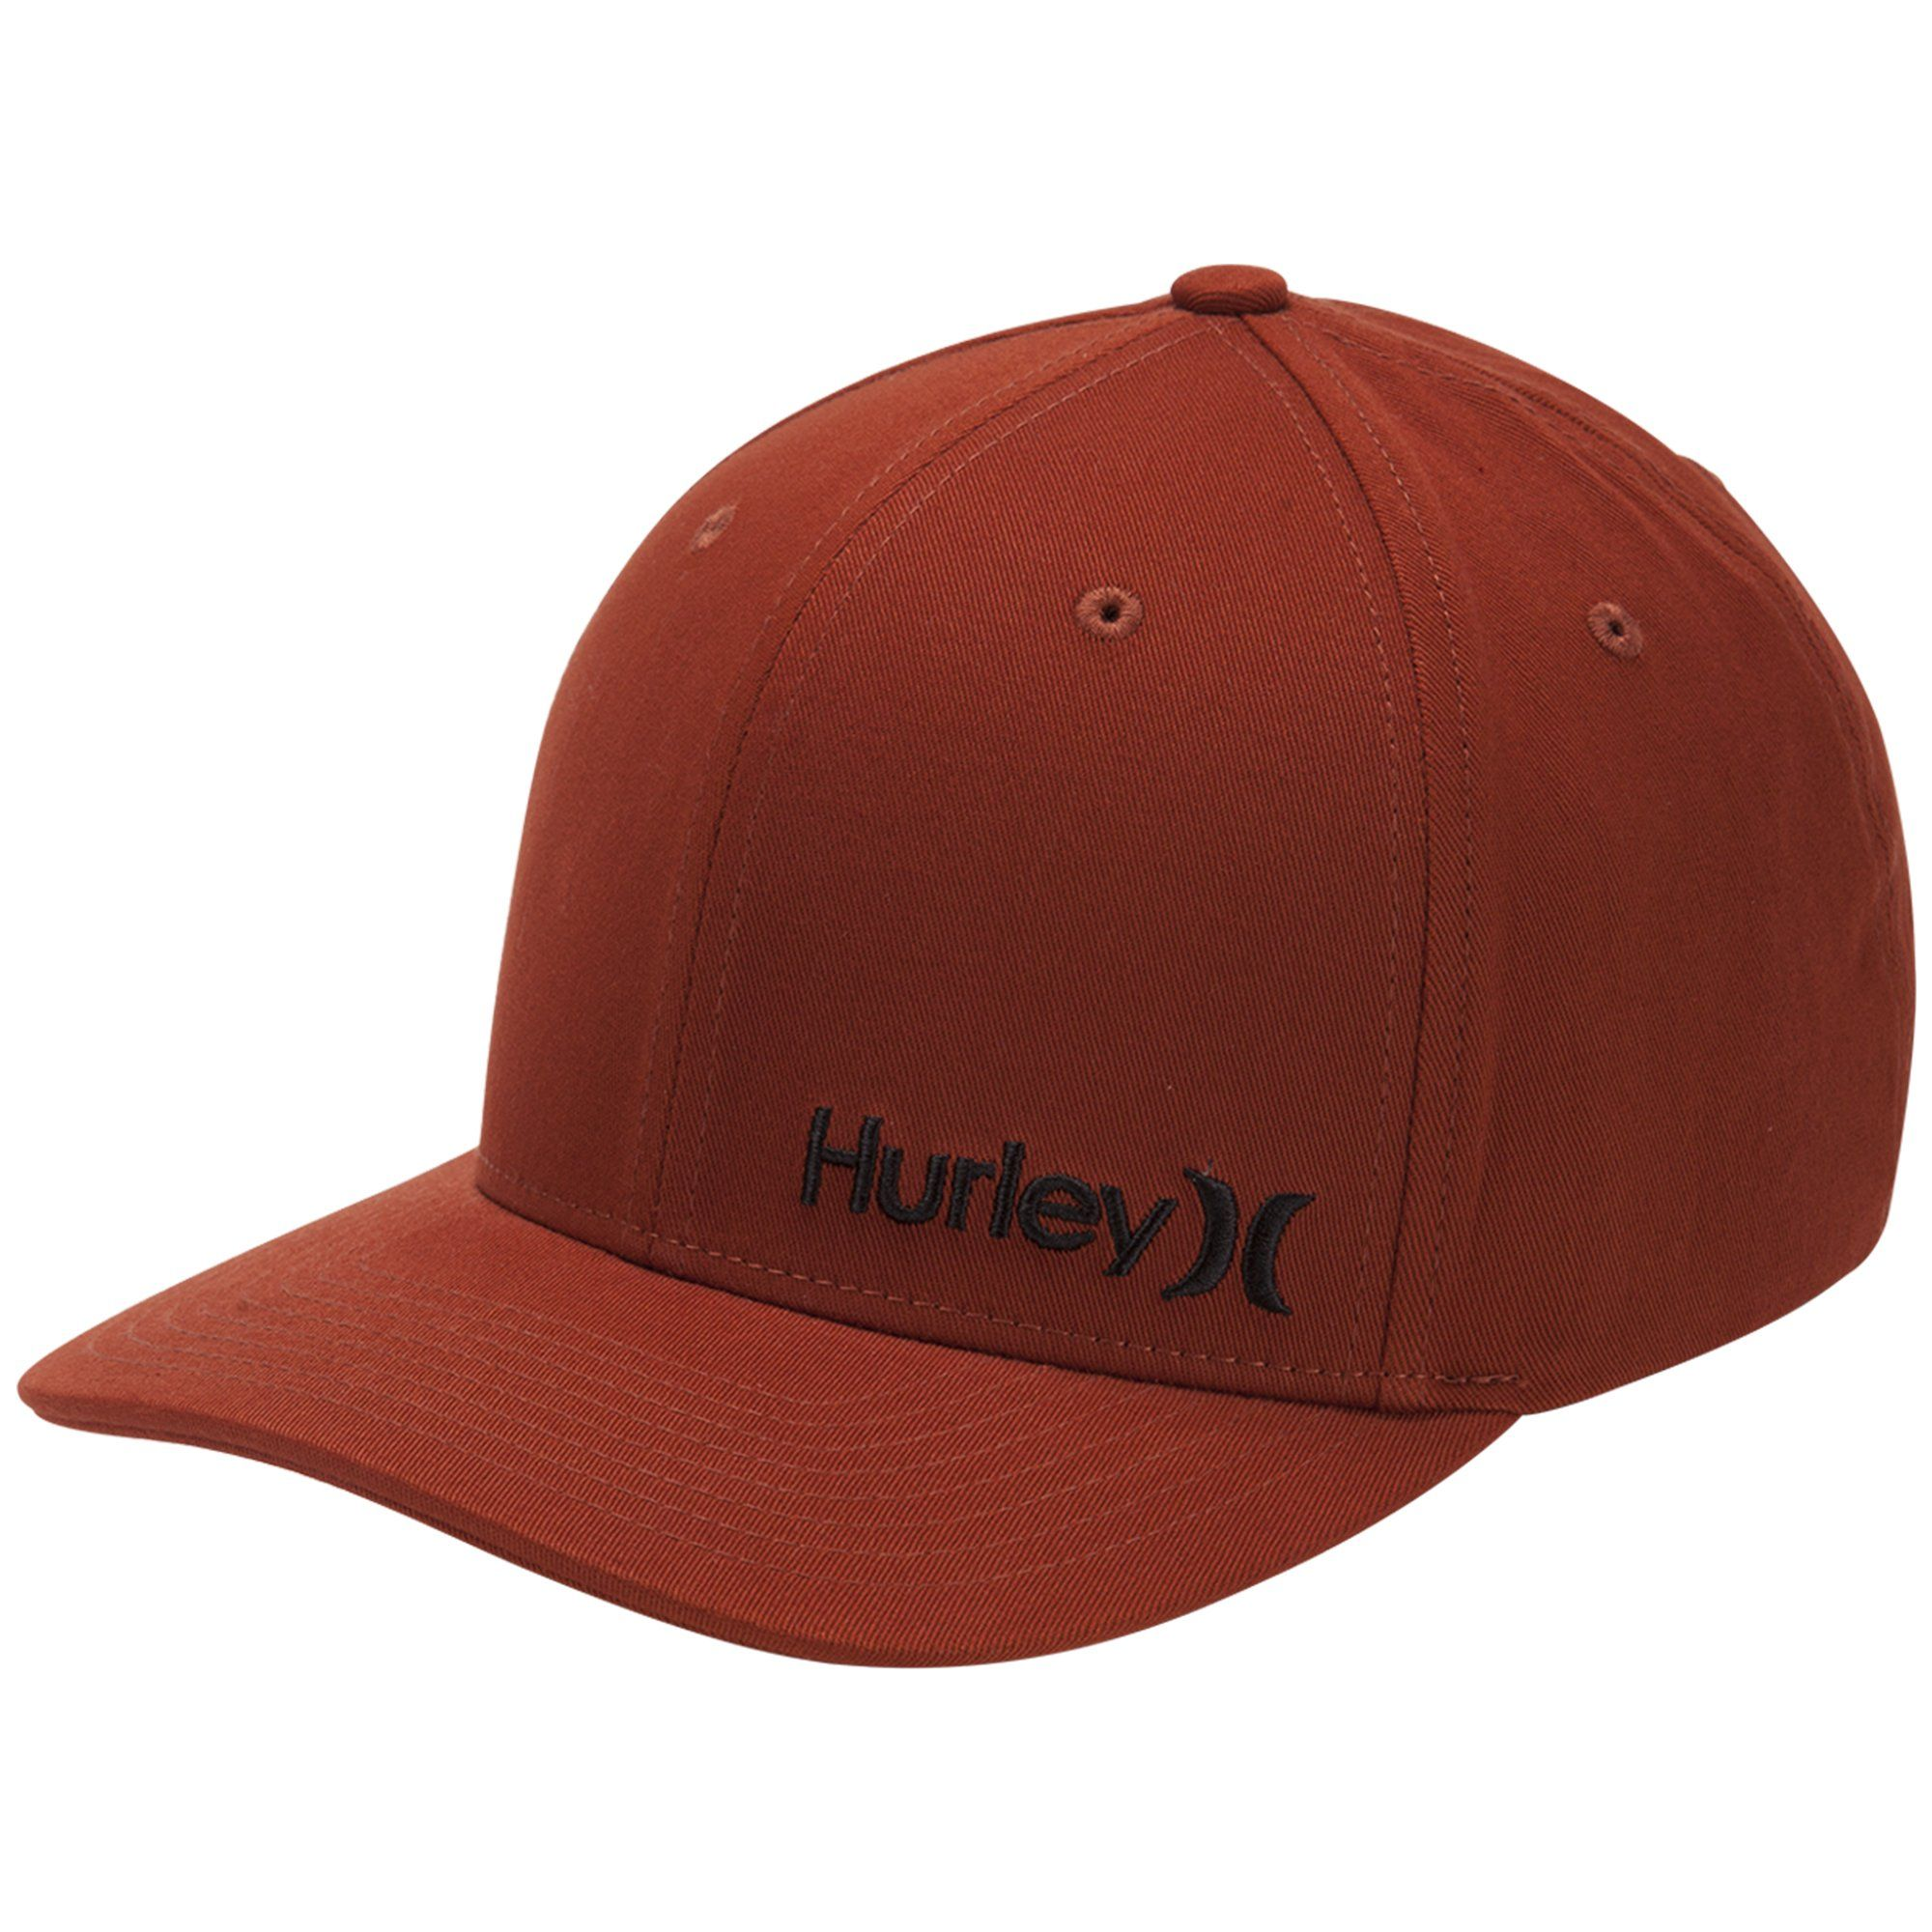 c400b0e2723 Hurley Men s Corp Hat Keep Your Cool